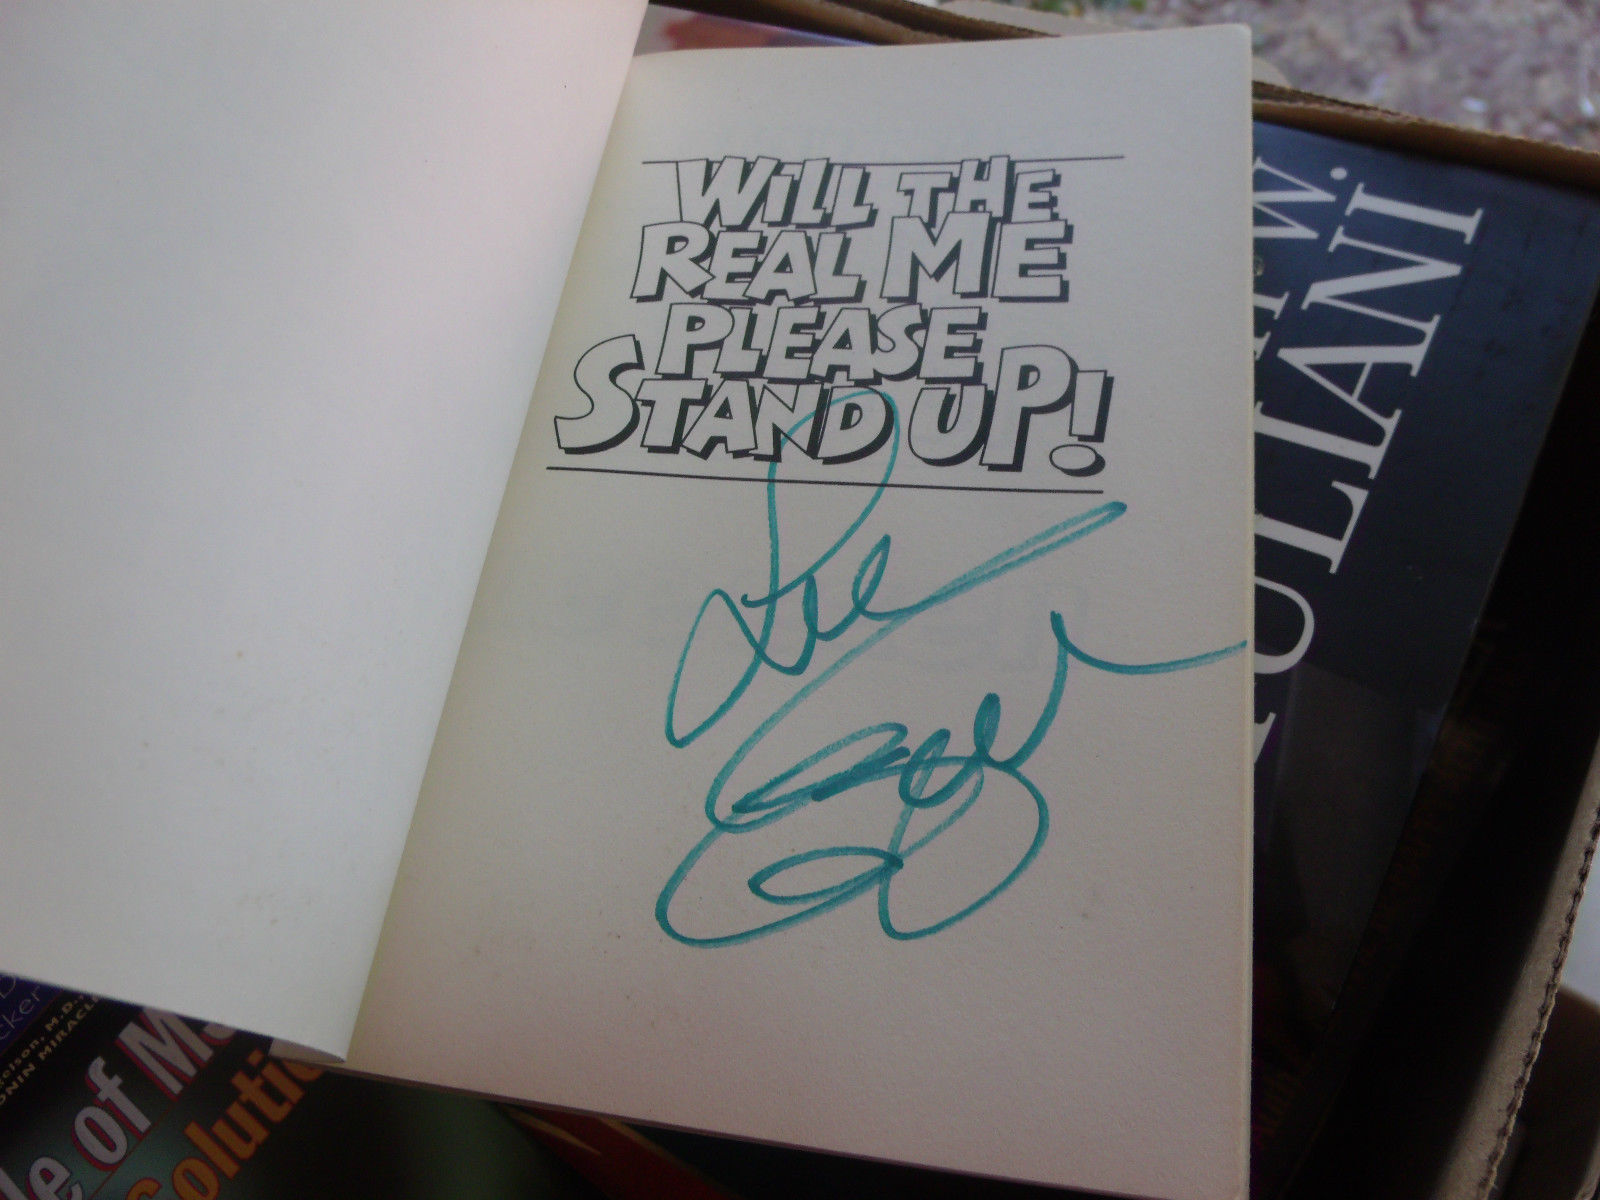 WILL THE REAL ME PLEASE STAND UP SIGNED BY LEE EZELL